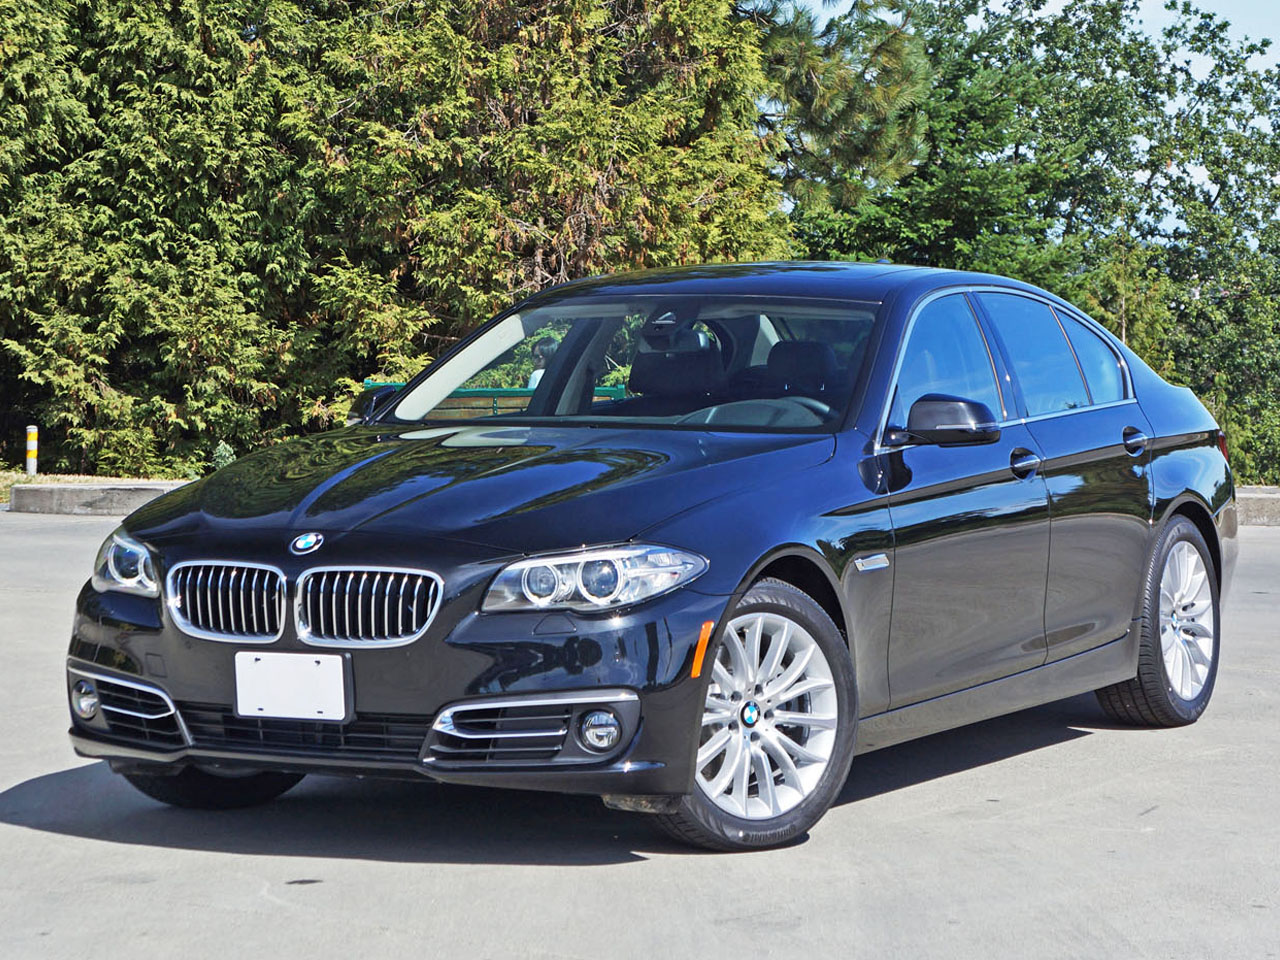 2015 Bmw 528i Xdrive Road Test Review Carcostcanada